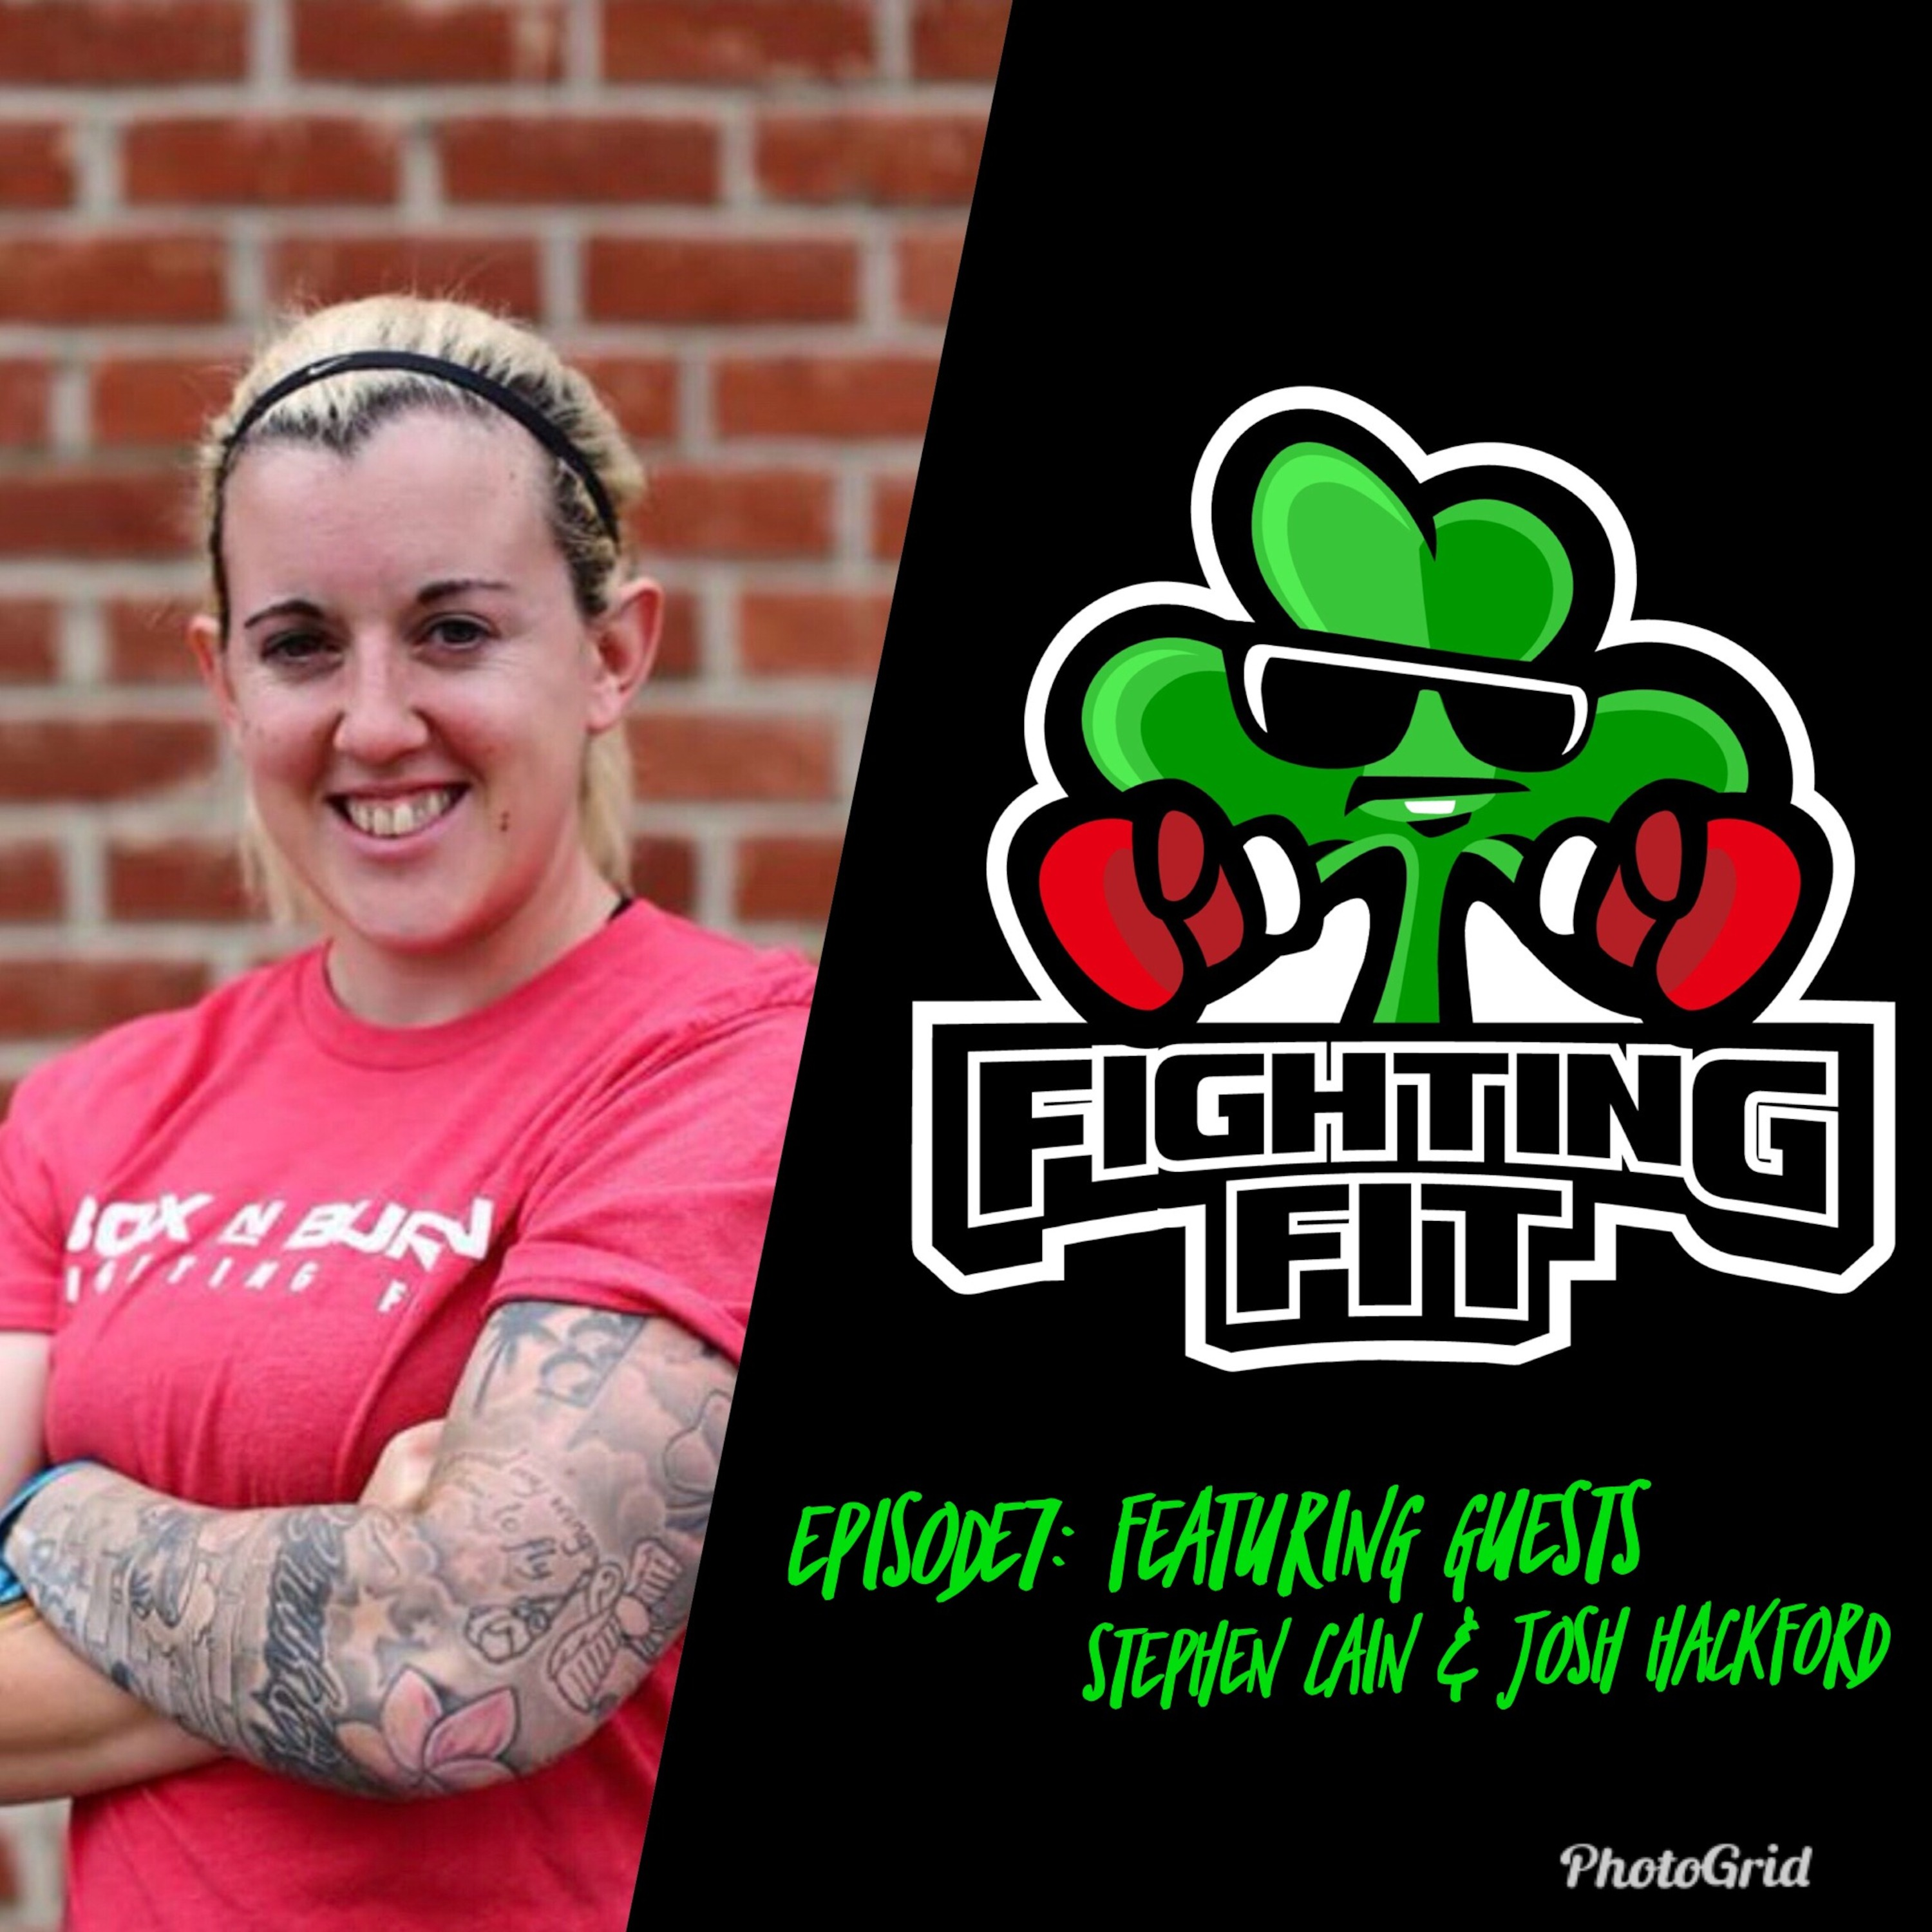 Fighting Fit with Kerrie Christie - Episode 7: Featuring guests Stephen Cain and Josh Hackford